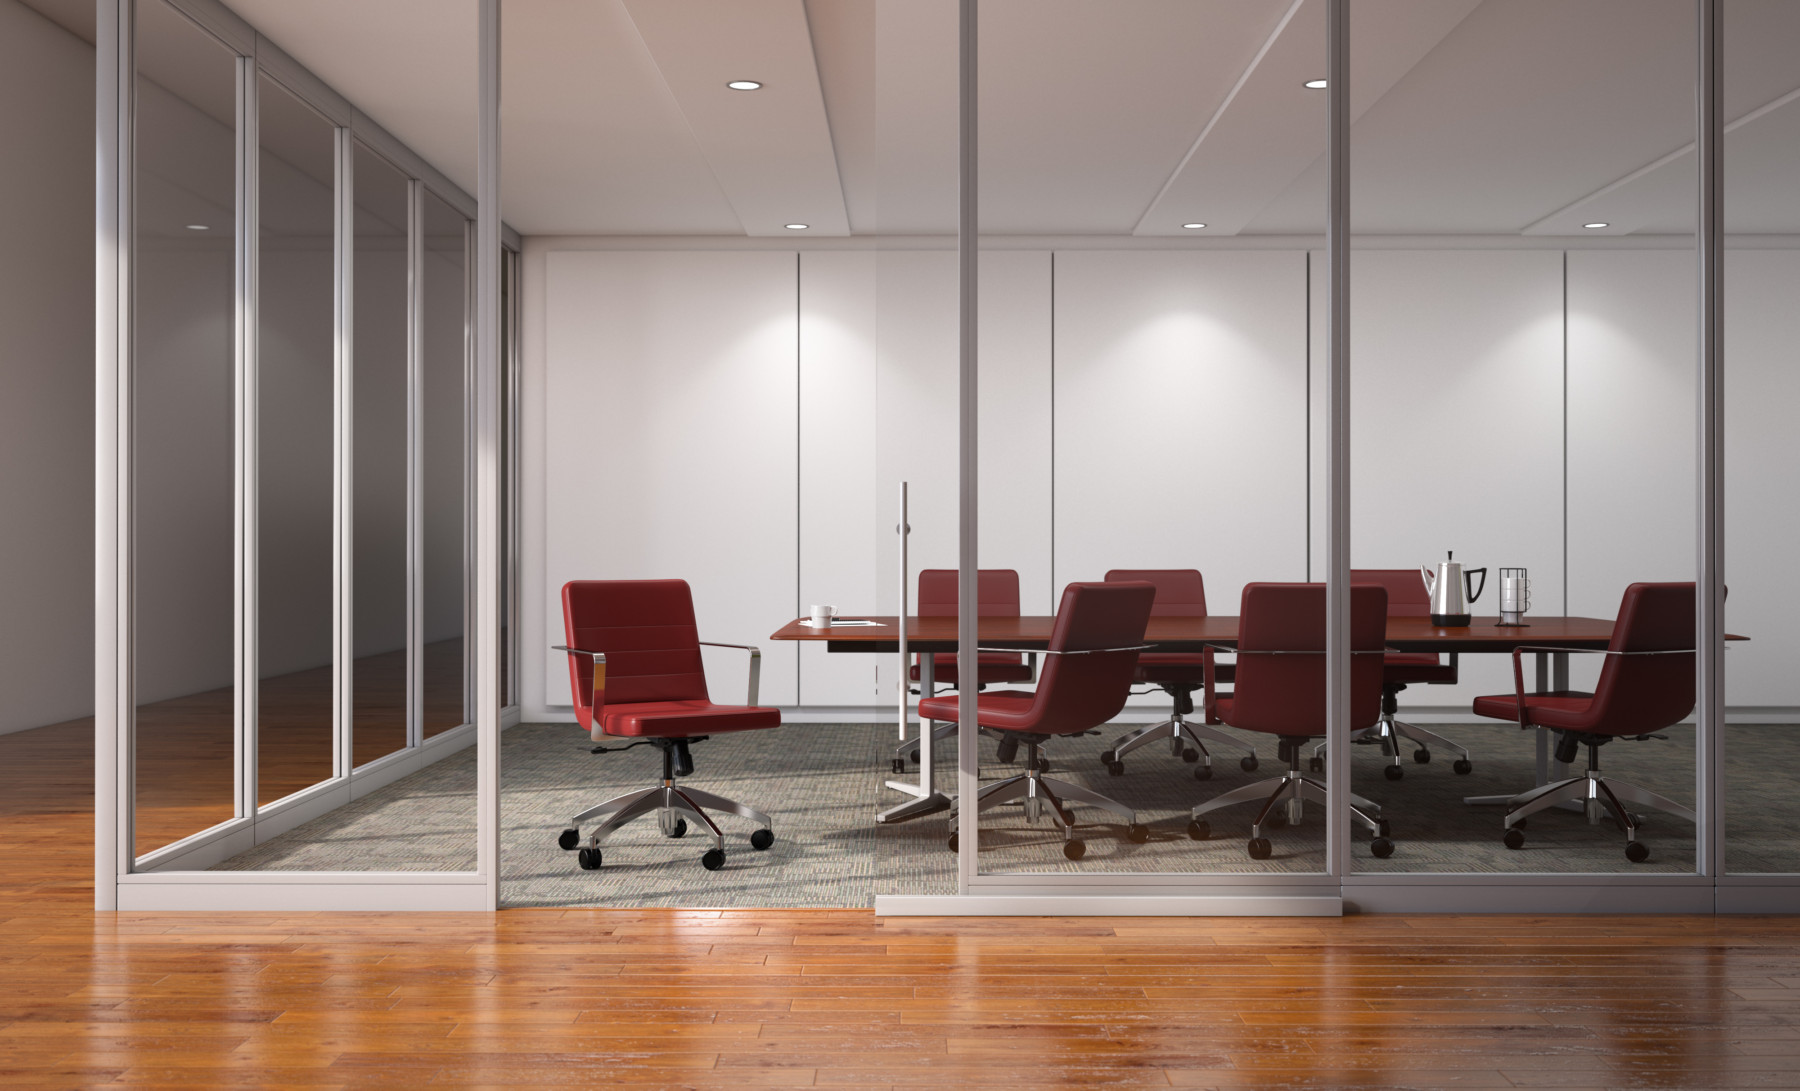 9to5 Seating & 9to5 Seating - Tackett and Associates